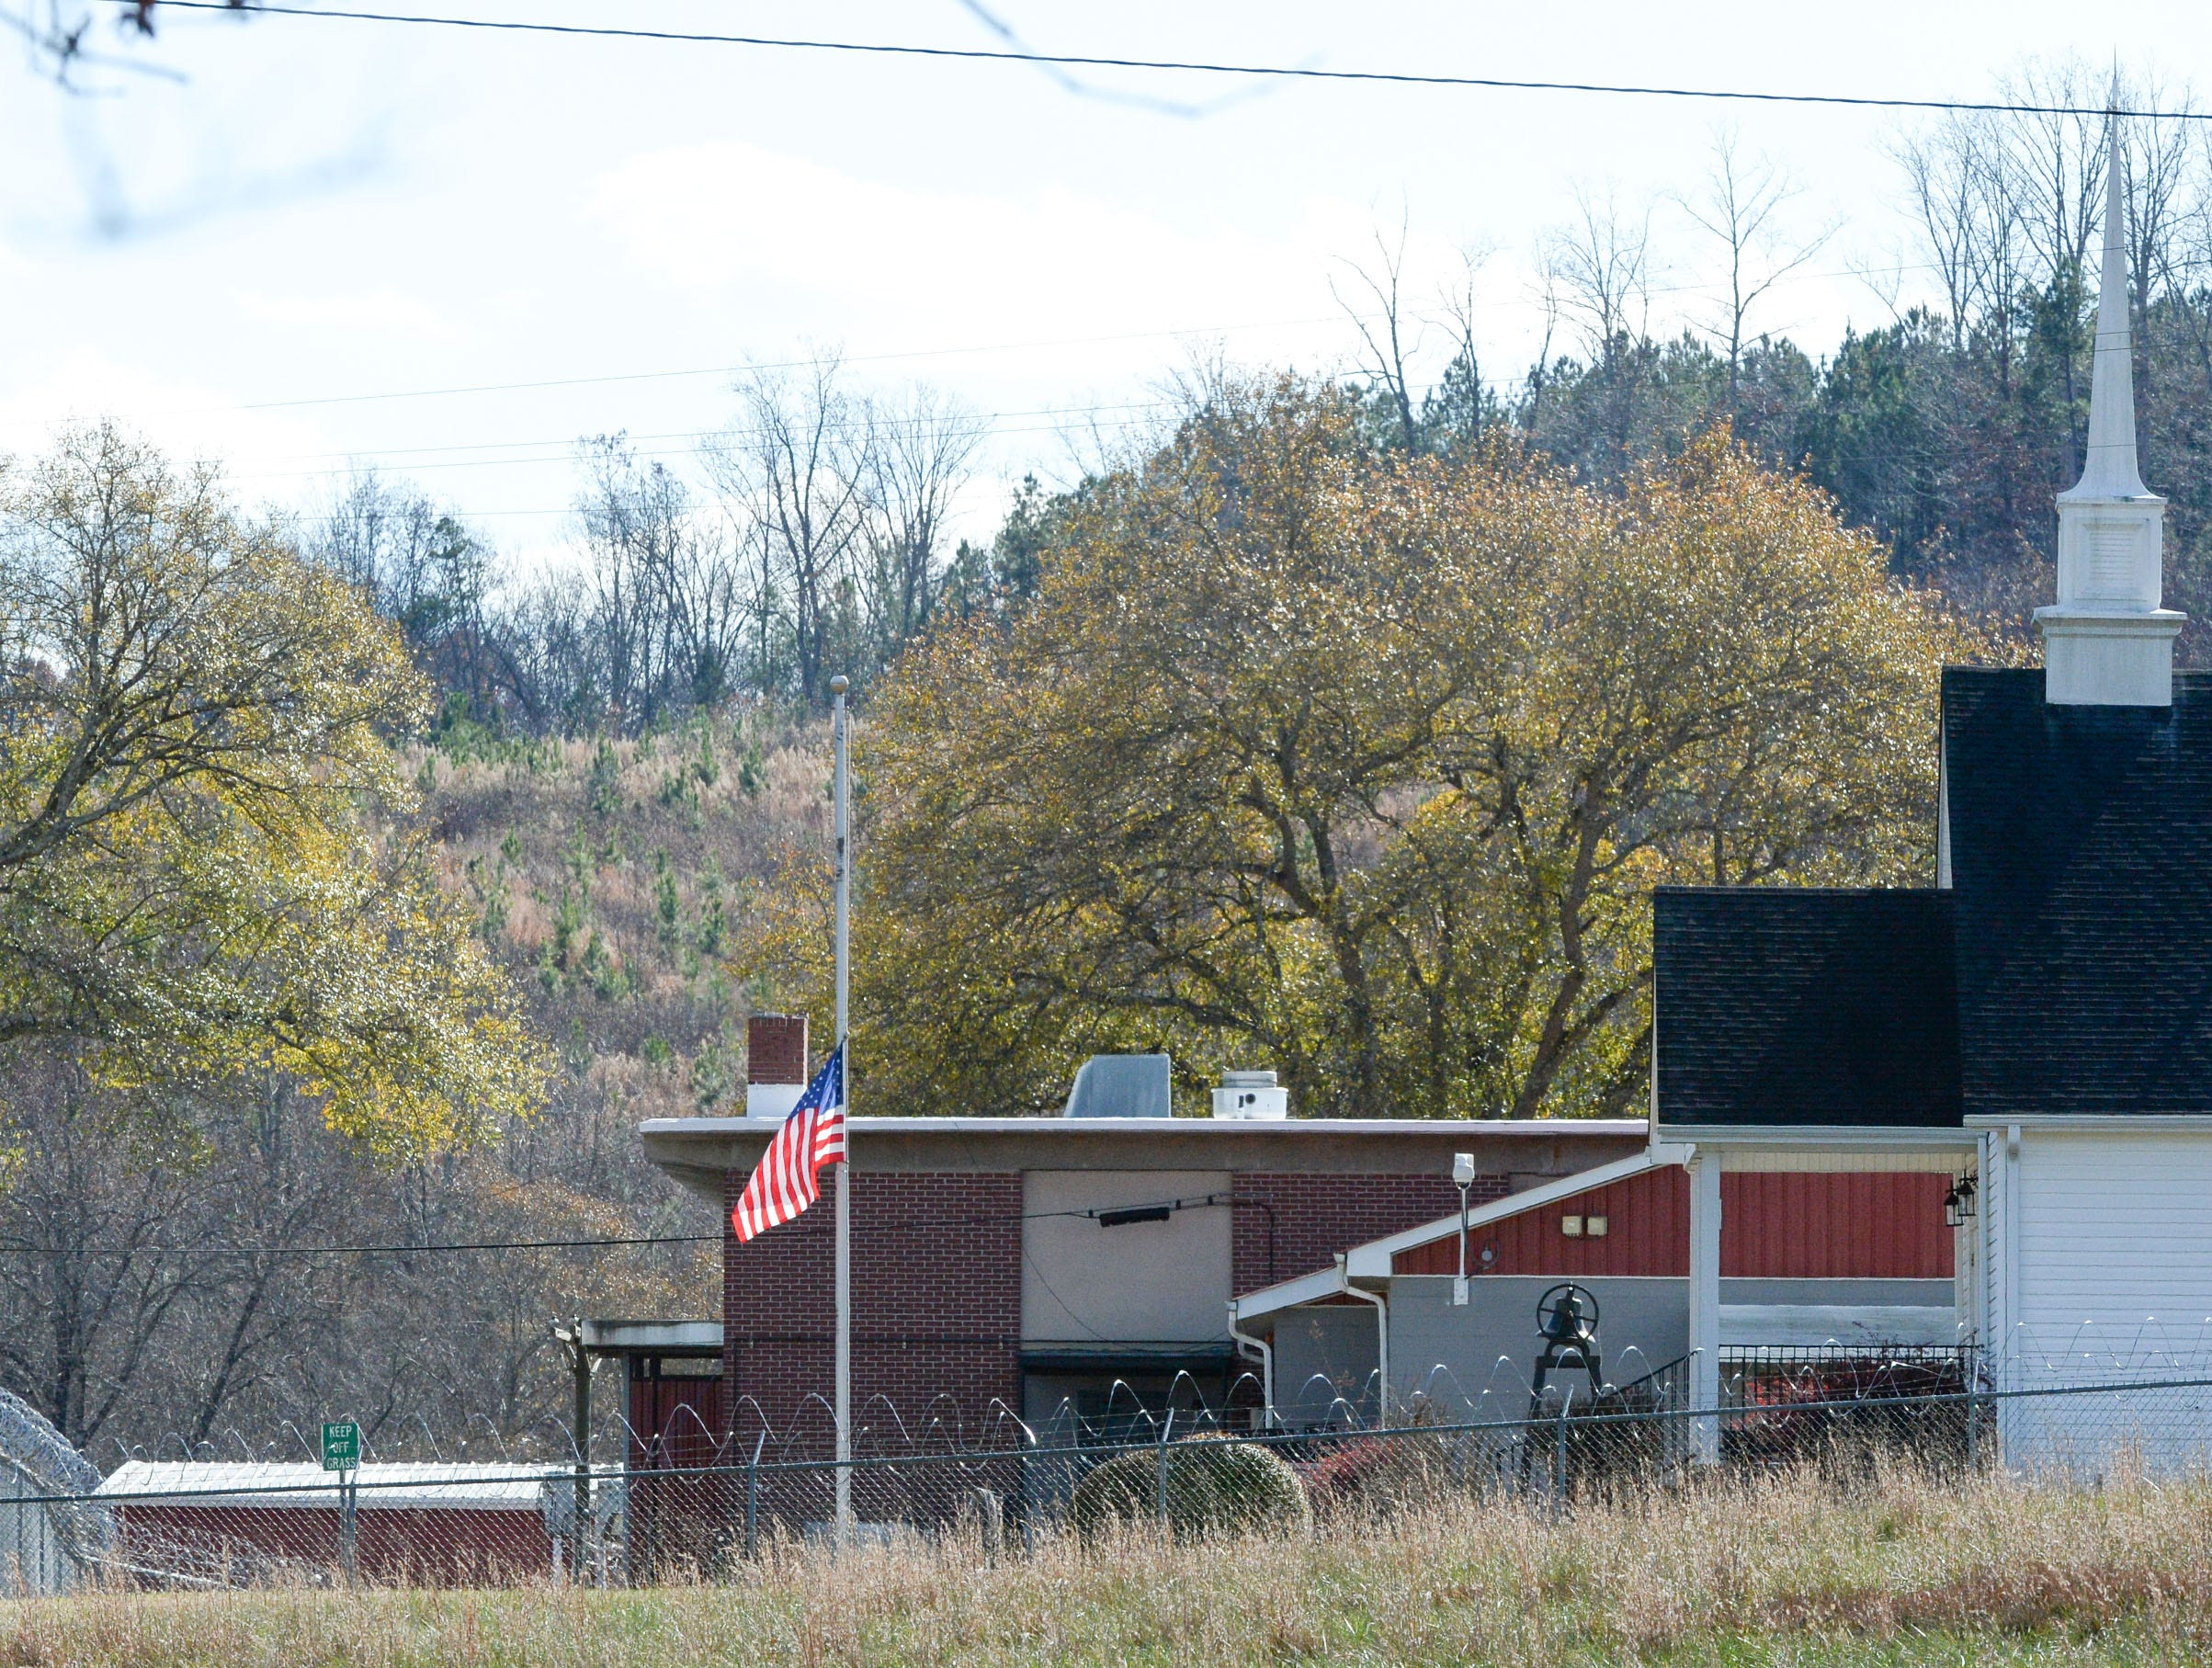 The Pickens County Prison, commonly called the stockade, on Prison Camp Road, where two inmates escaped Tuesday morning.